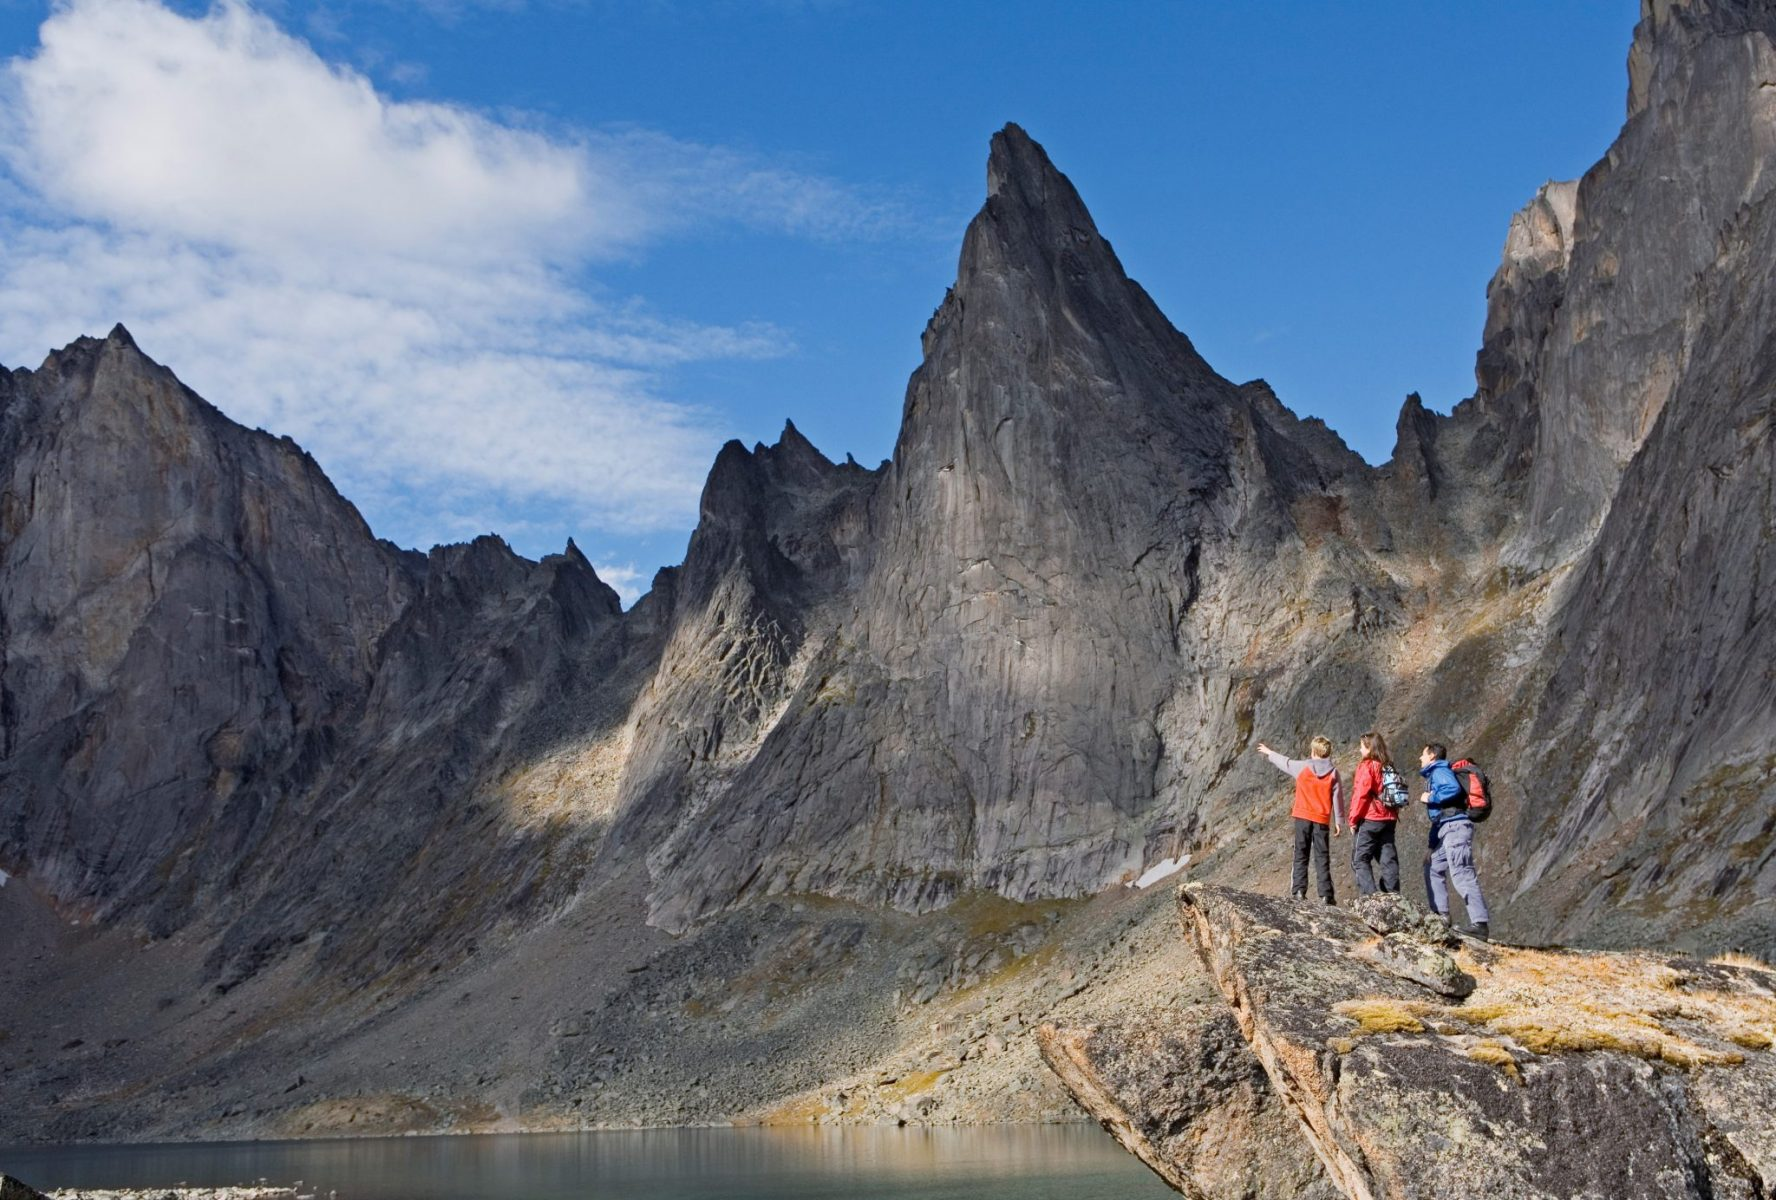 Three hikers stand on a rock next to a lake surrounded by high jagged mountains in Tombstone Territorial Park